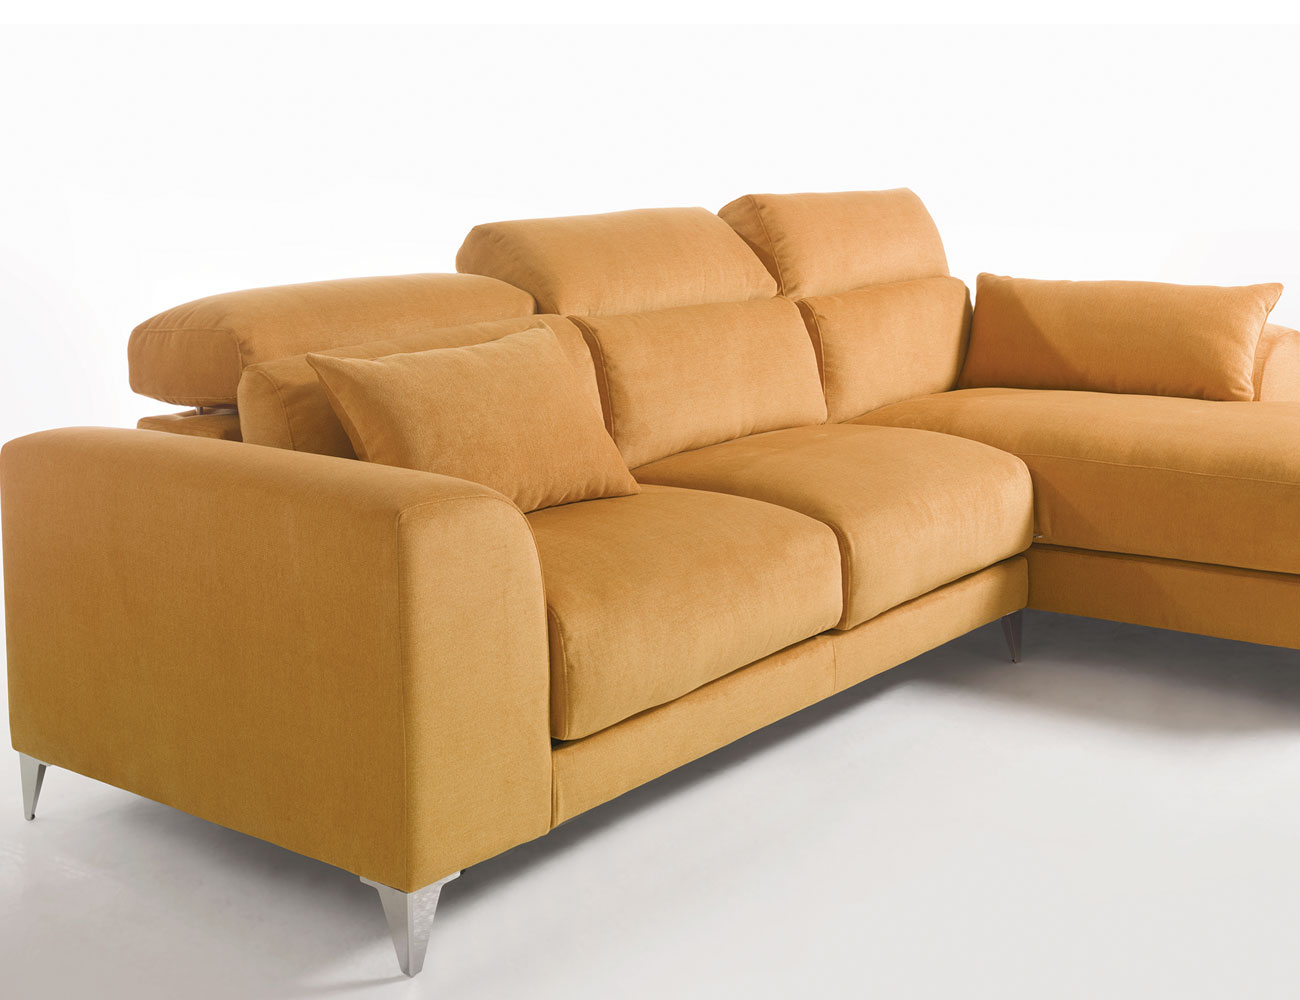 Sofa chaiselongue gran lujo decorativo patas altas amarillo 230